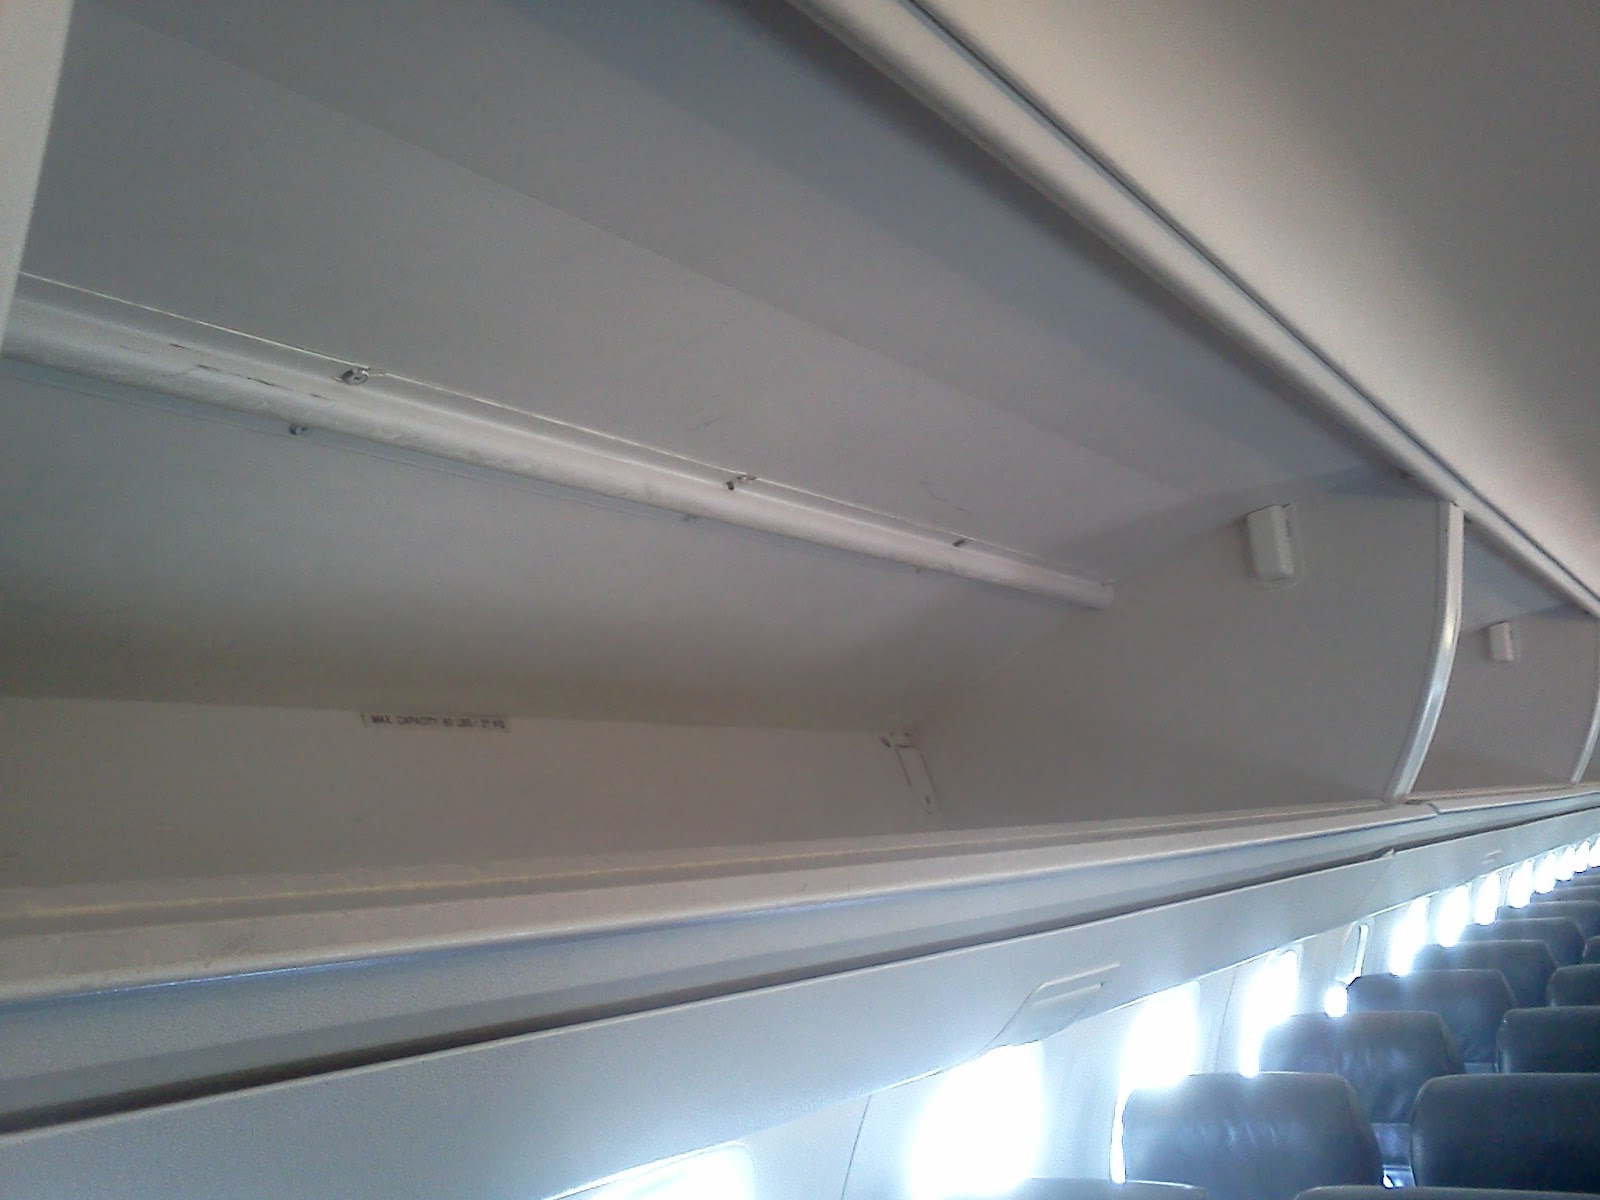 American Eagle Airlines Overhead Bin for Carry On Baggage Stowage